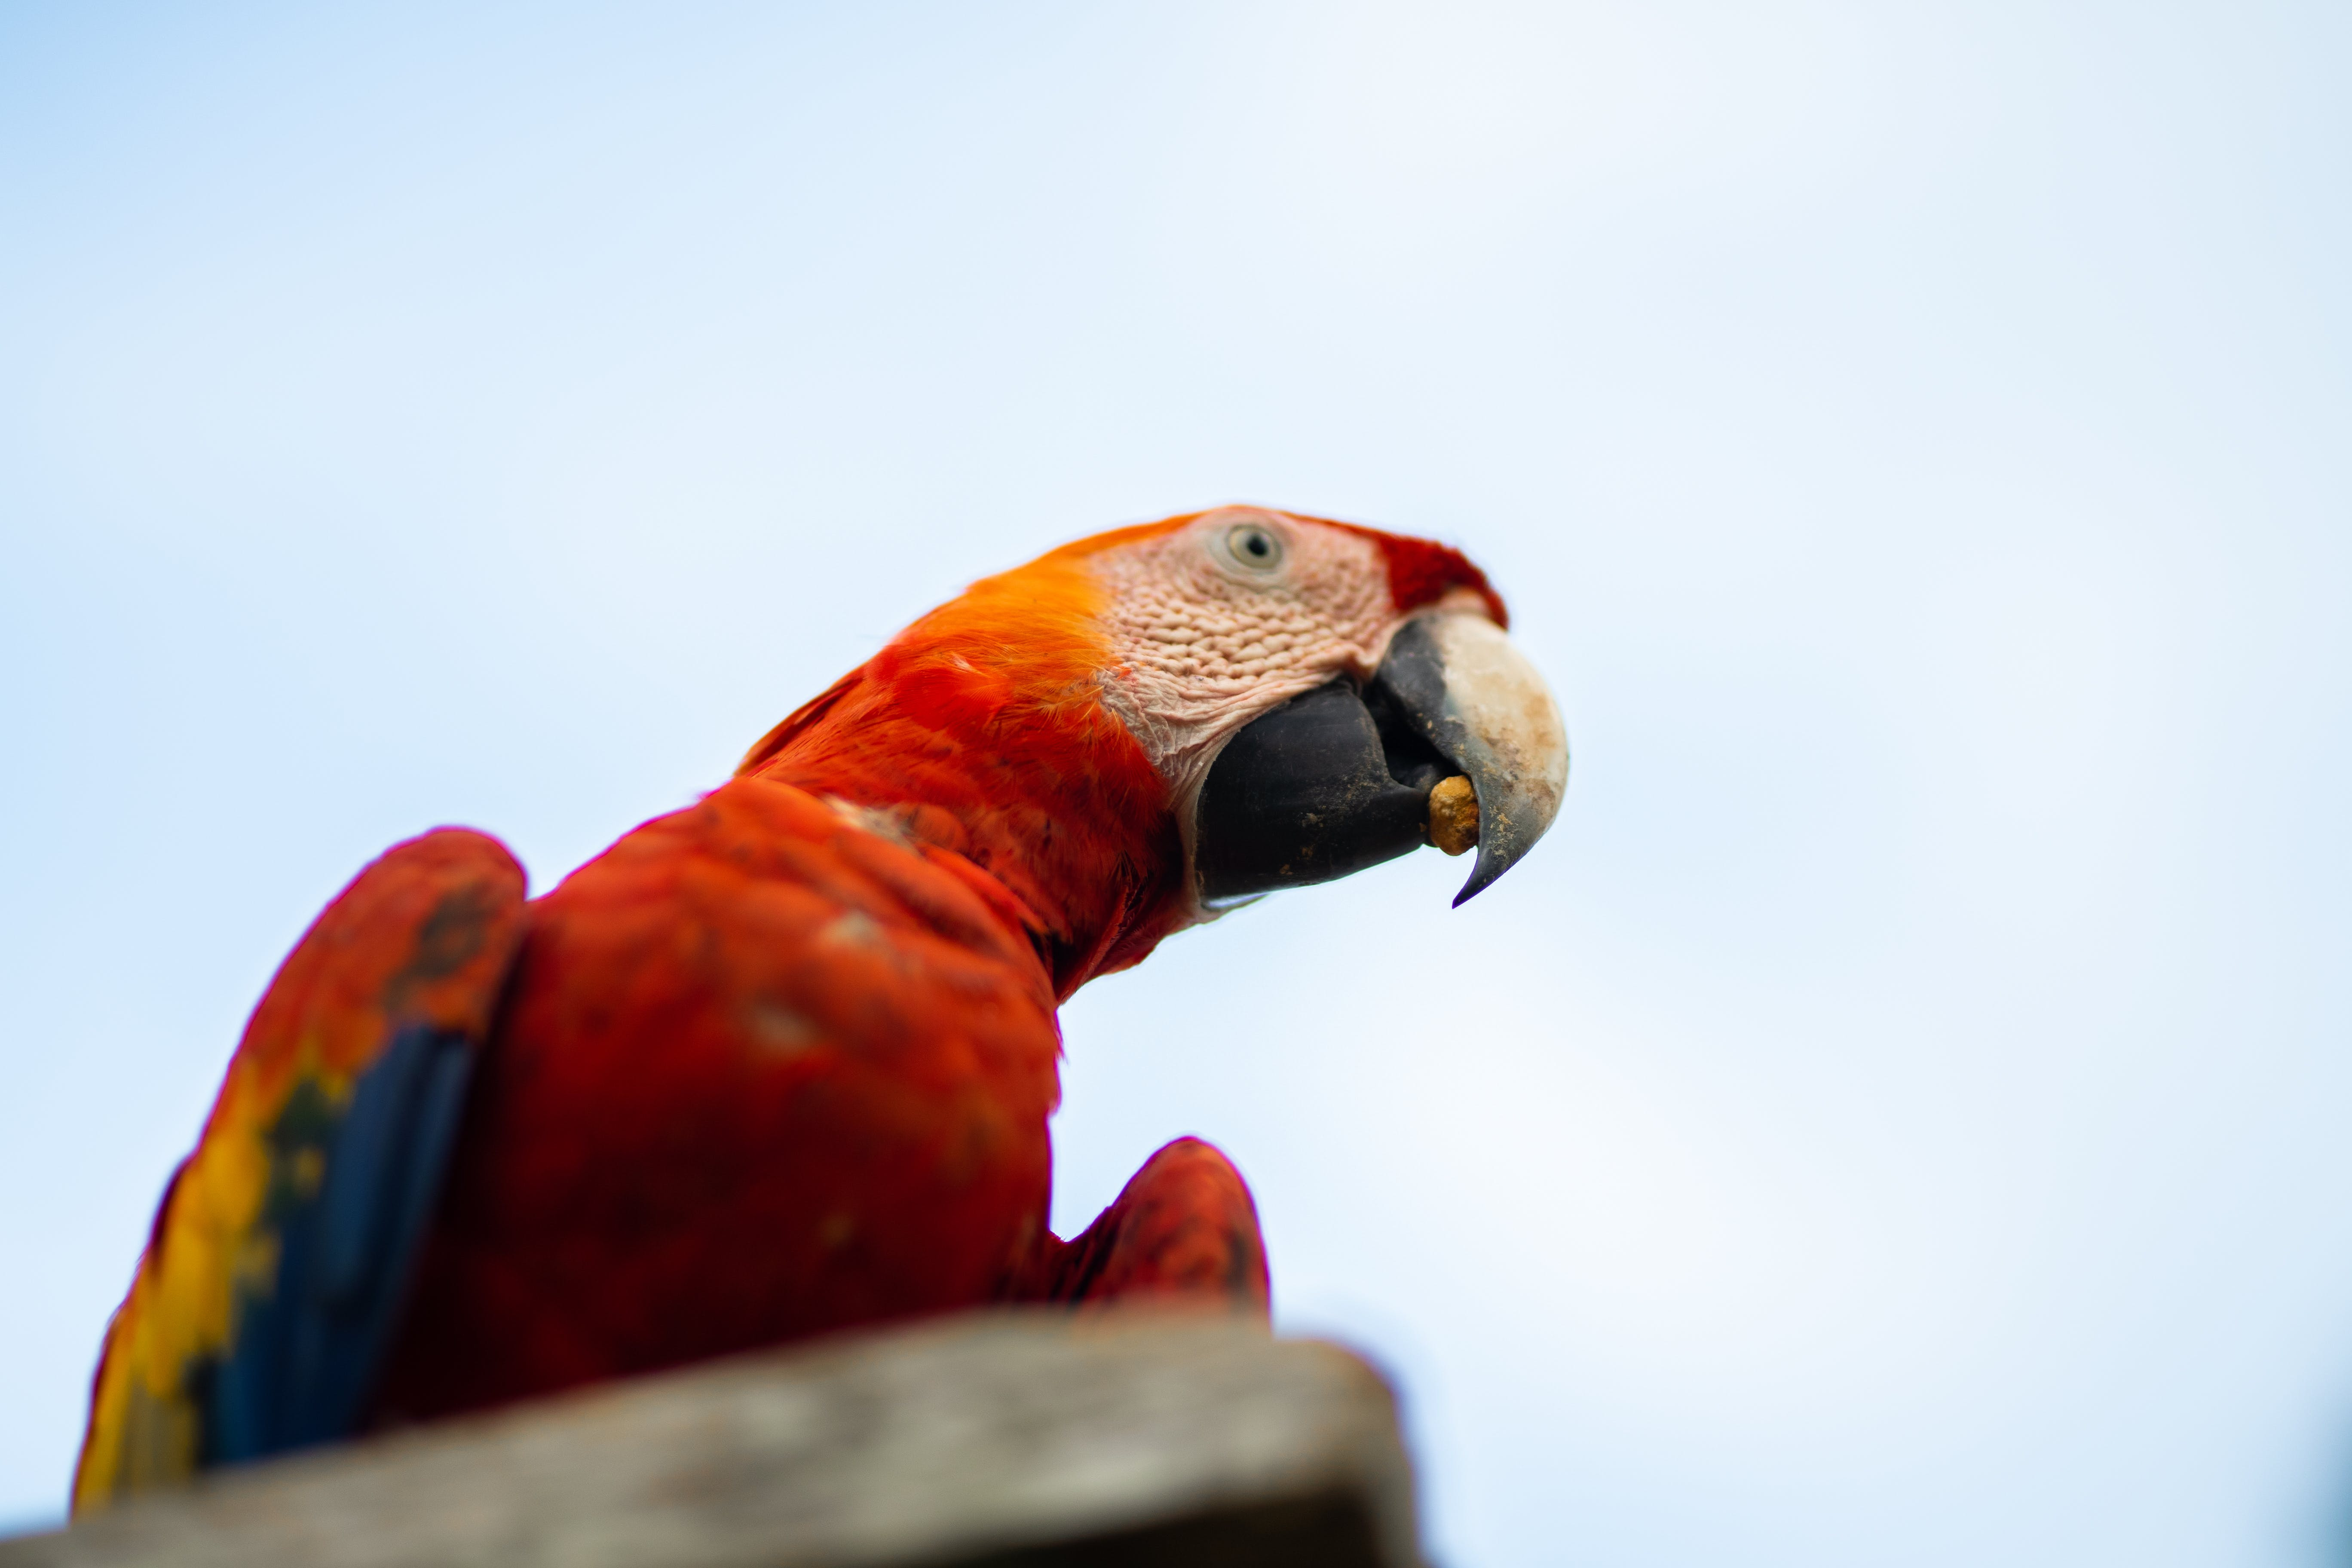 Photo of a Macau Parrot